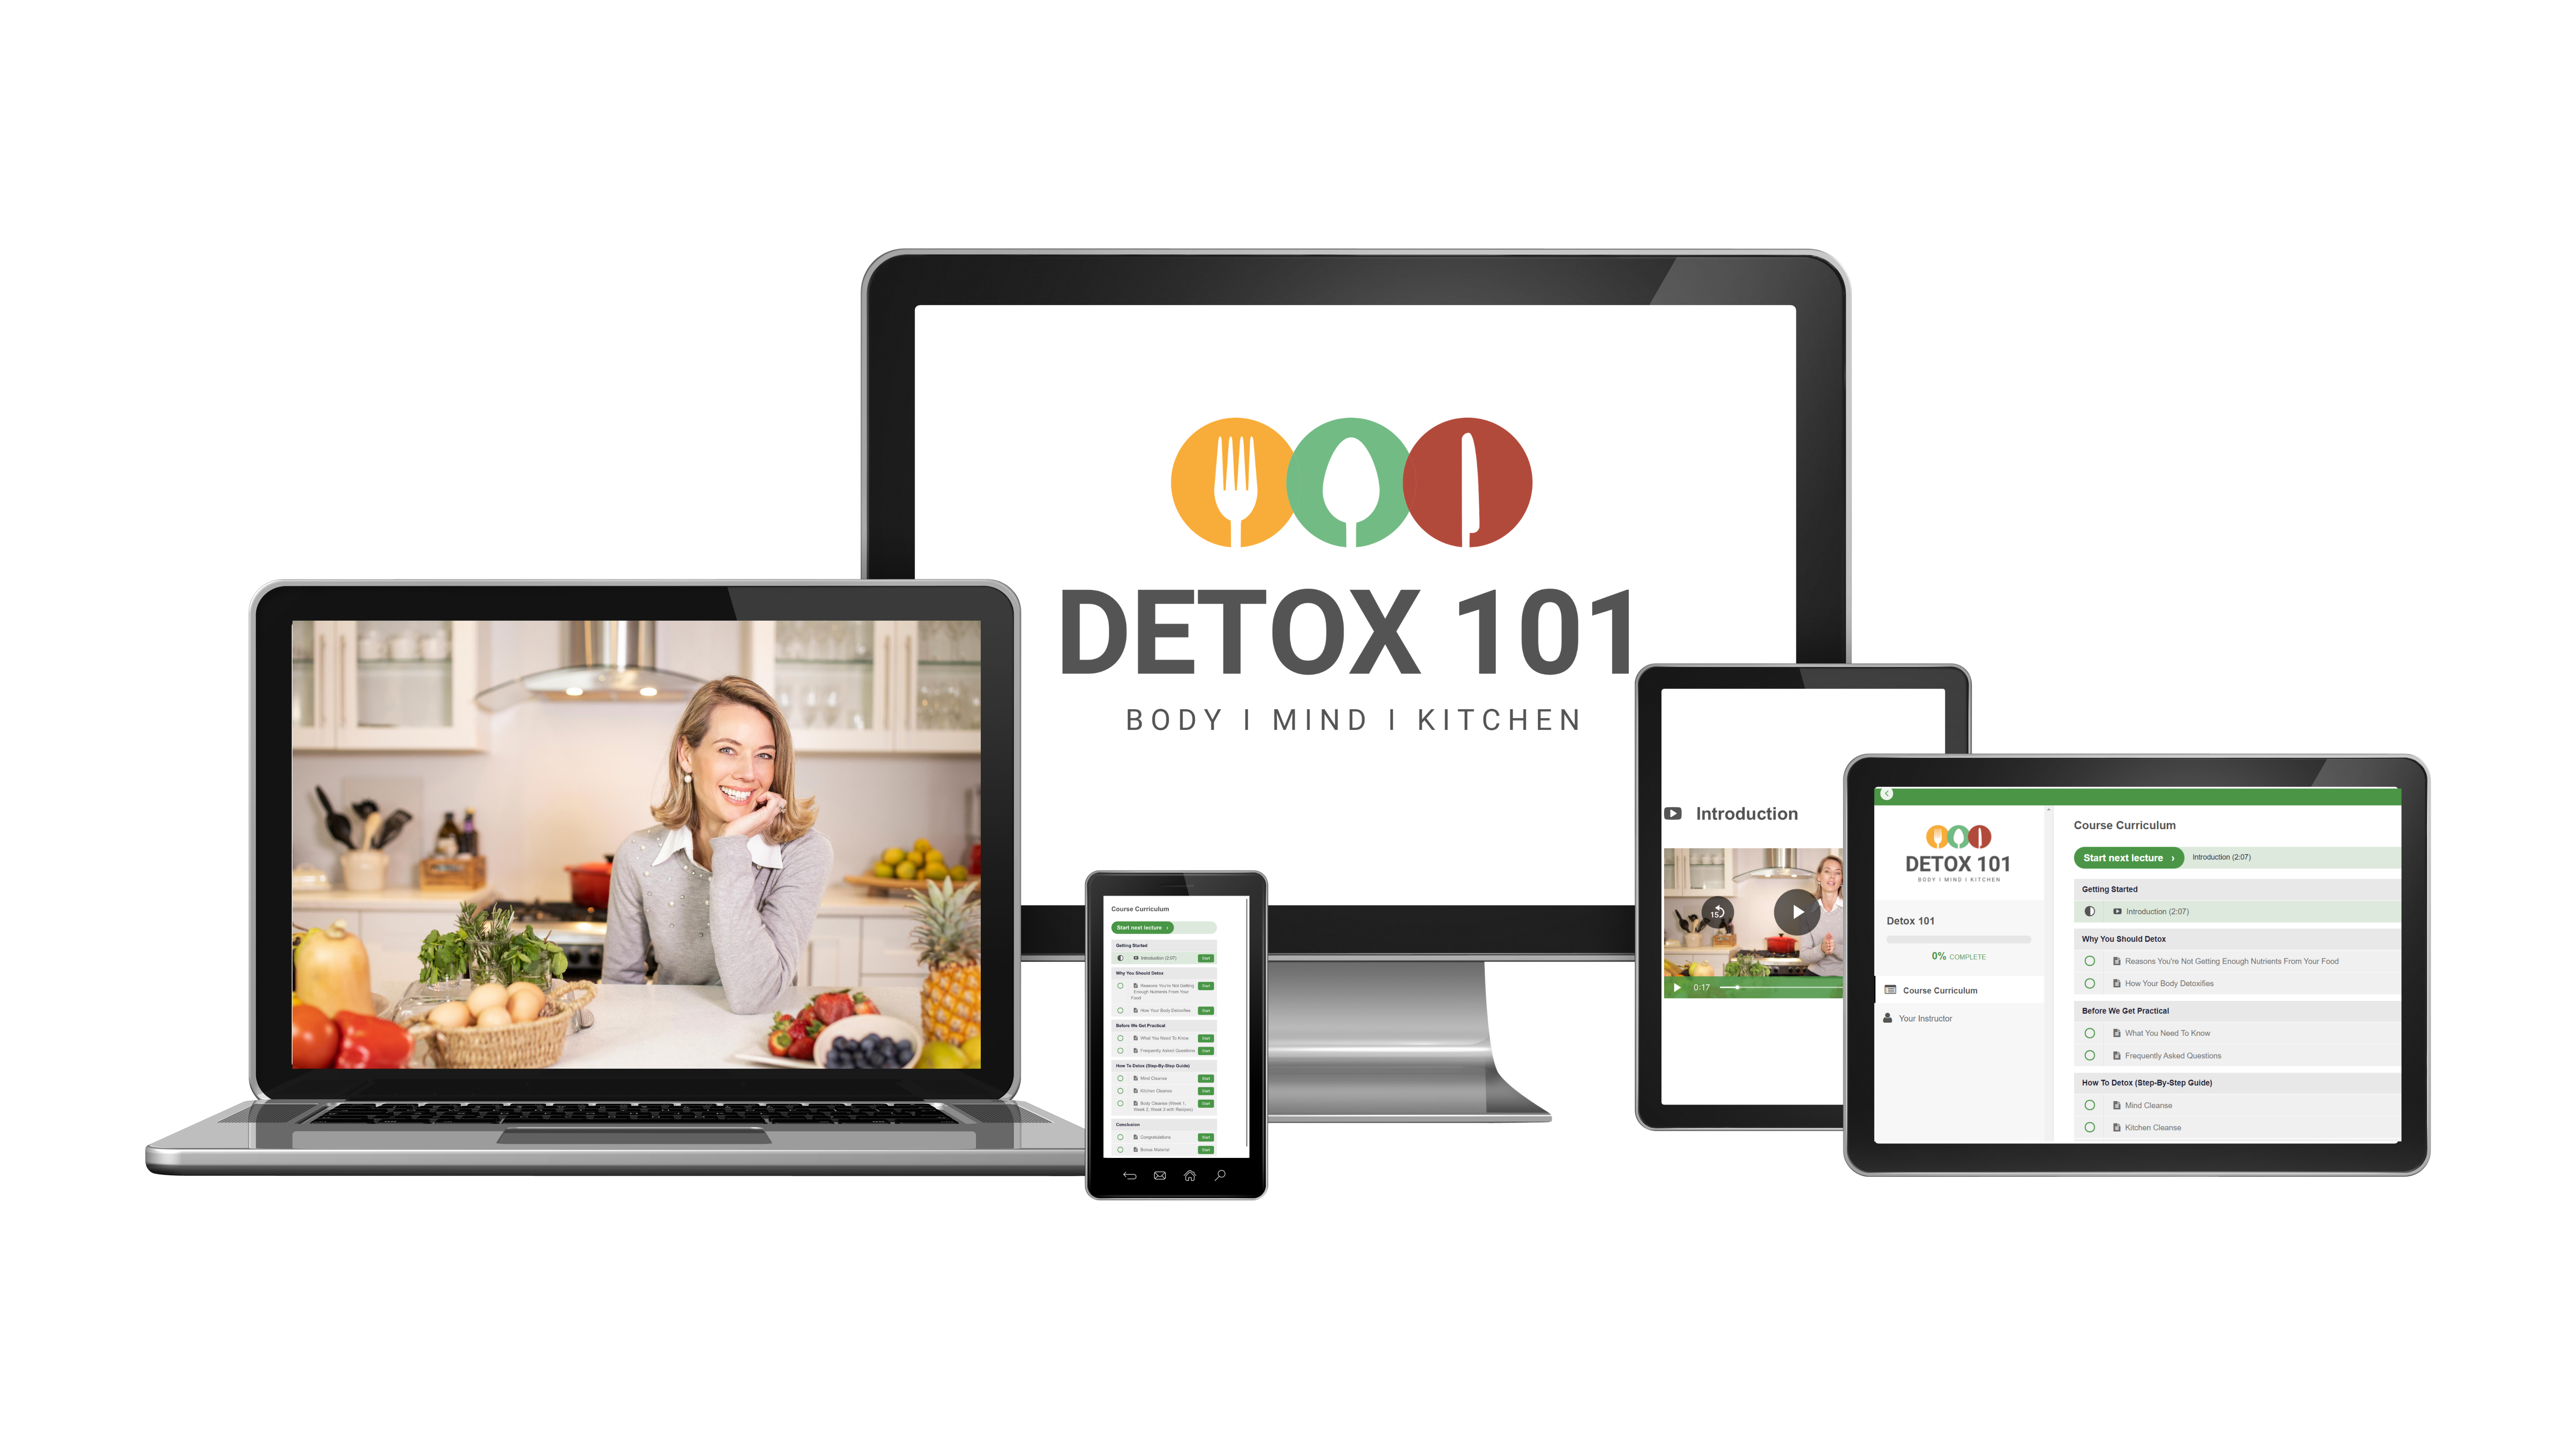 Detox 101 - The Ultimate Step-By-Step Detox Guide to a Complete Body, Mind and Kitchen Cleanse in 21 days. 🍍🥦🍅💭🔪